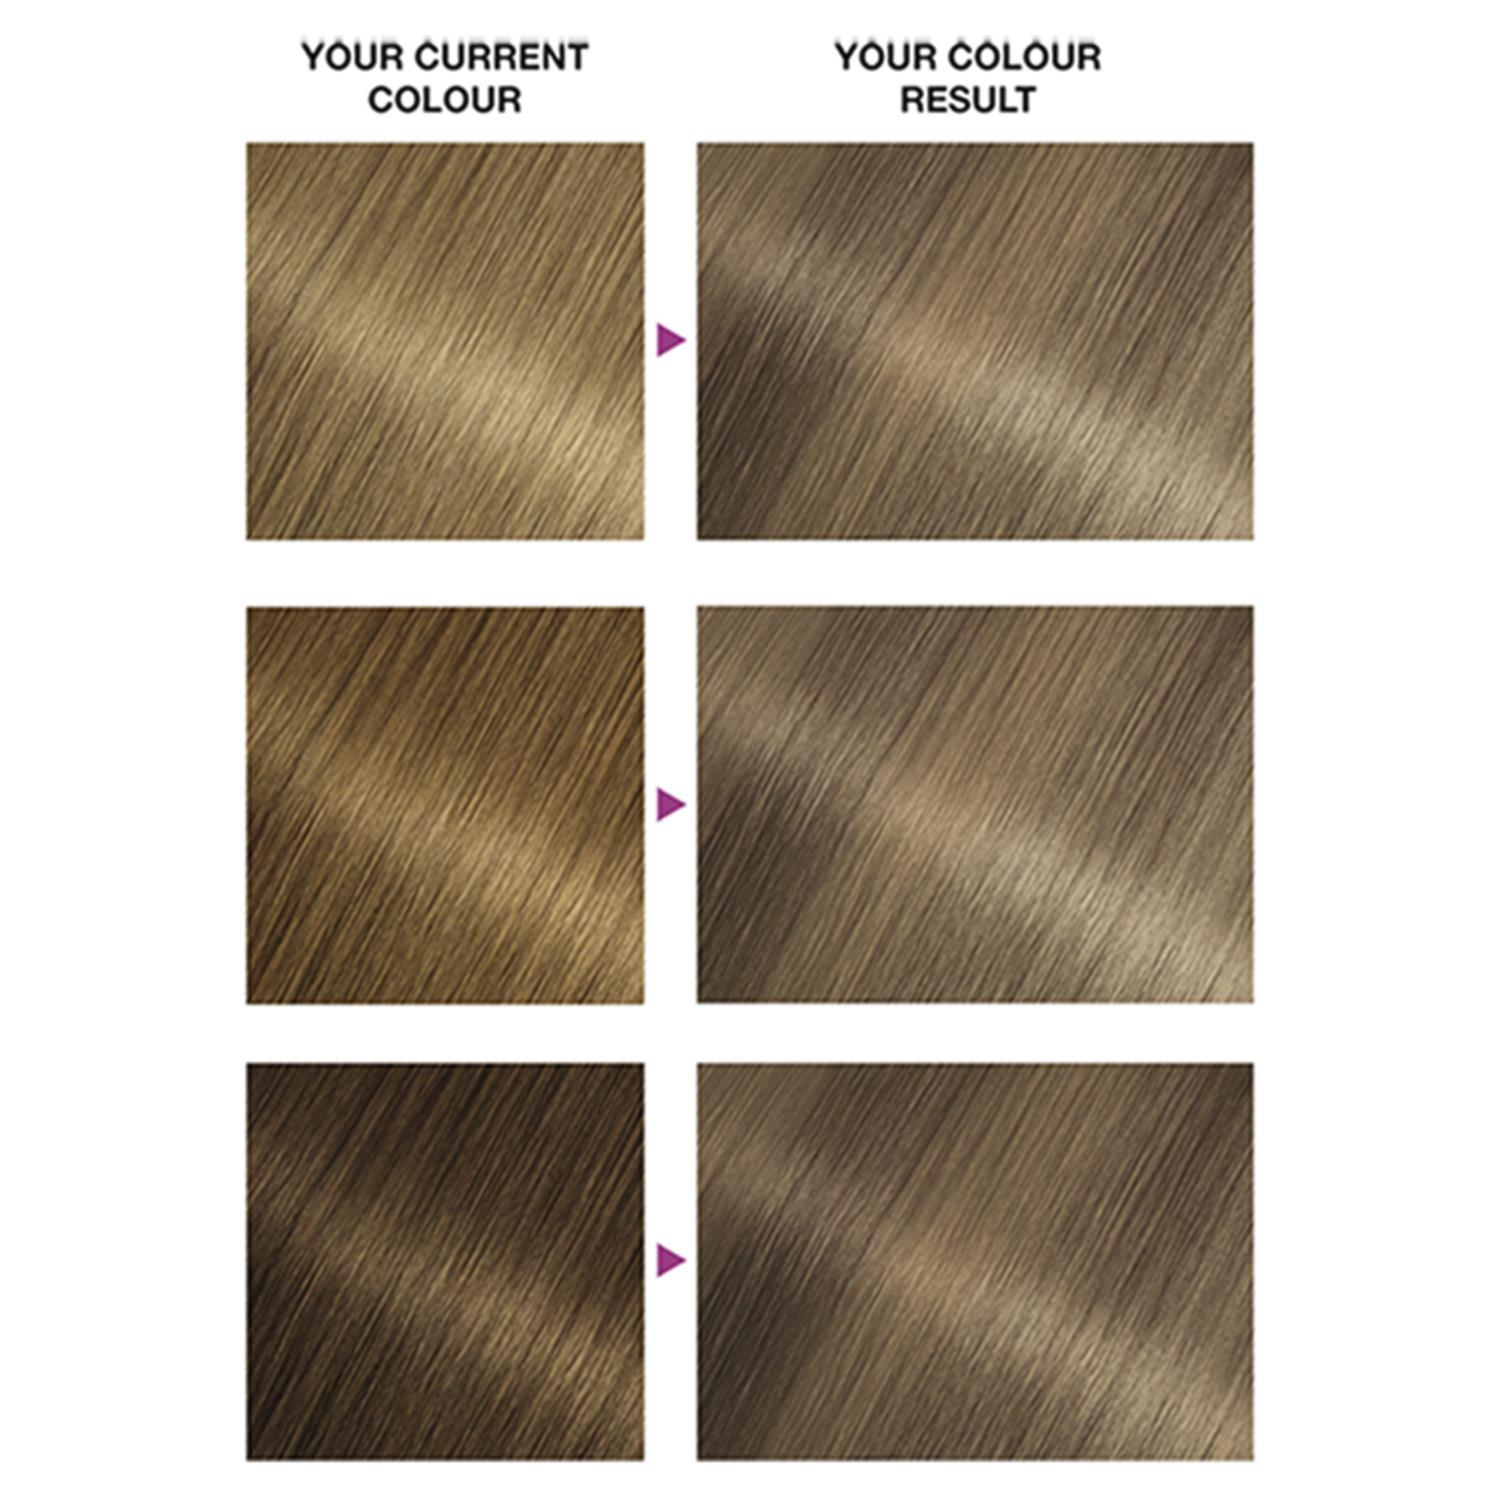 thumbnail 265 - 3 Pack Garnier Nutrisse Permanent Hair Dye With Different Shades